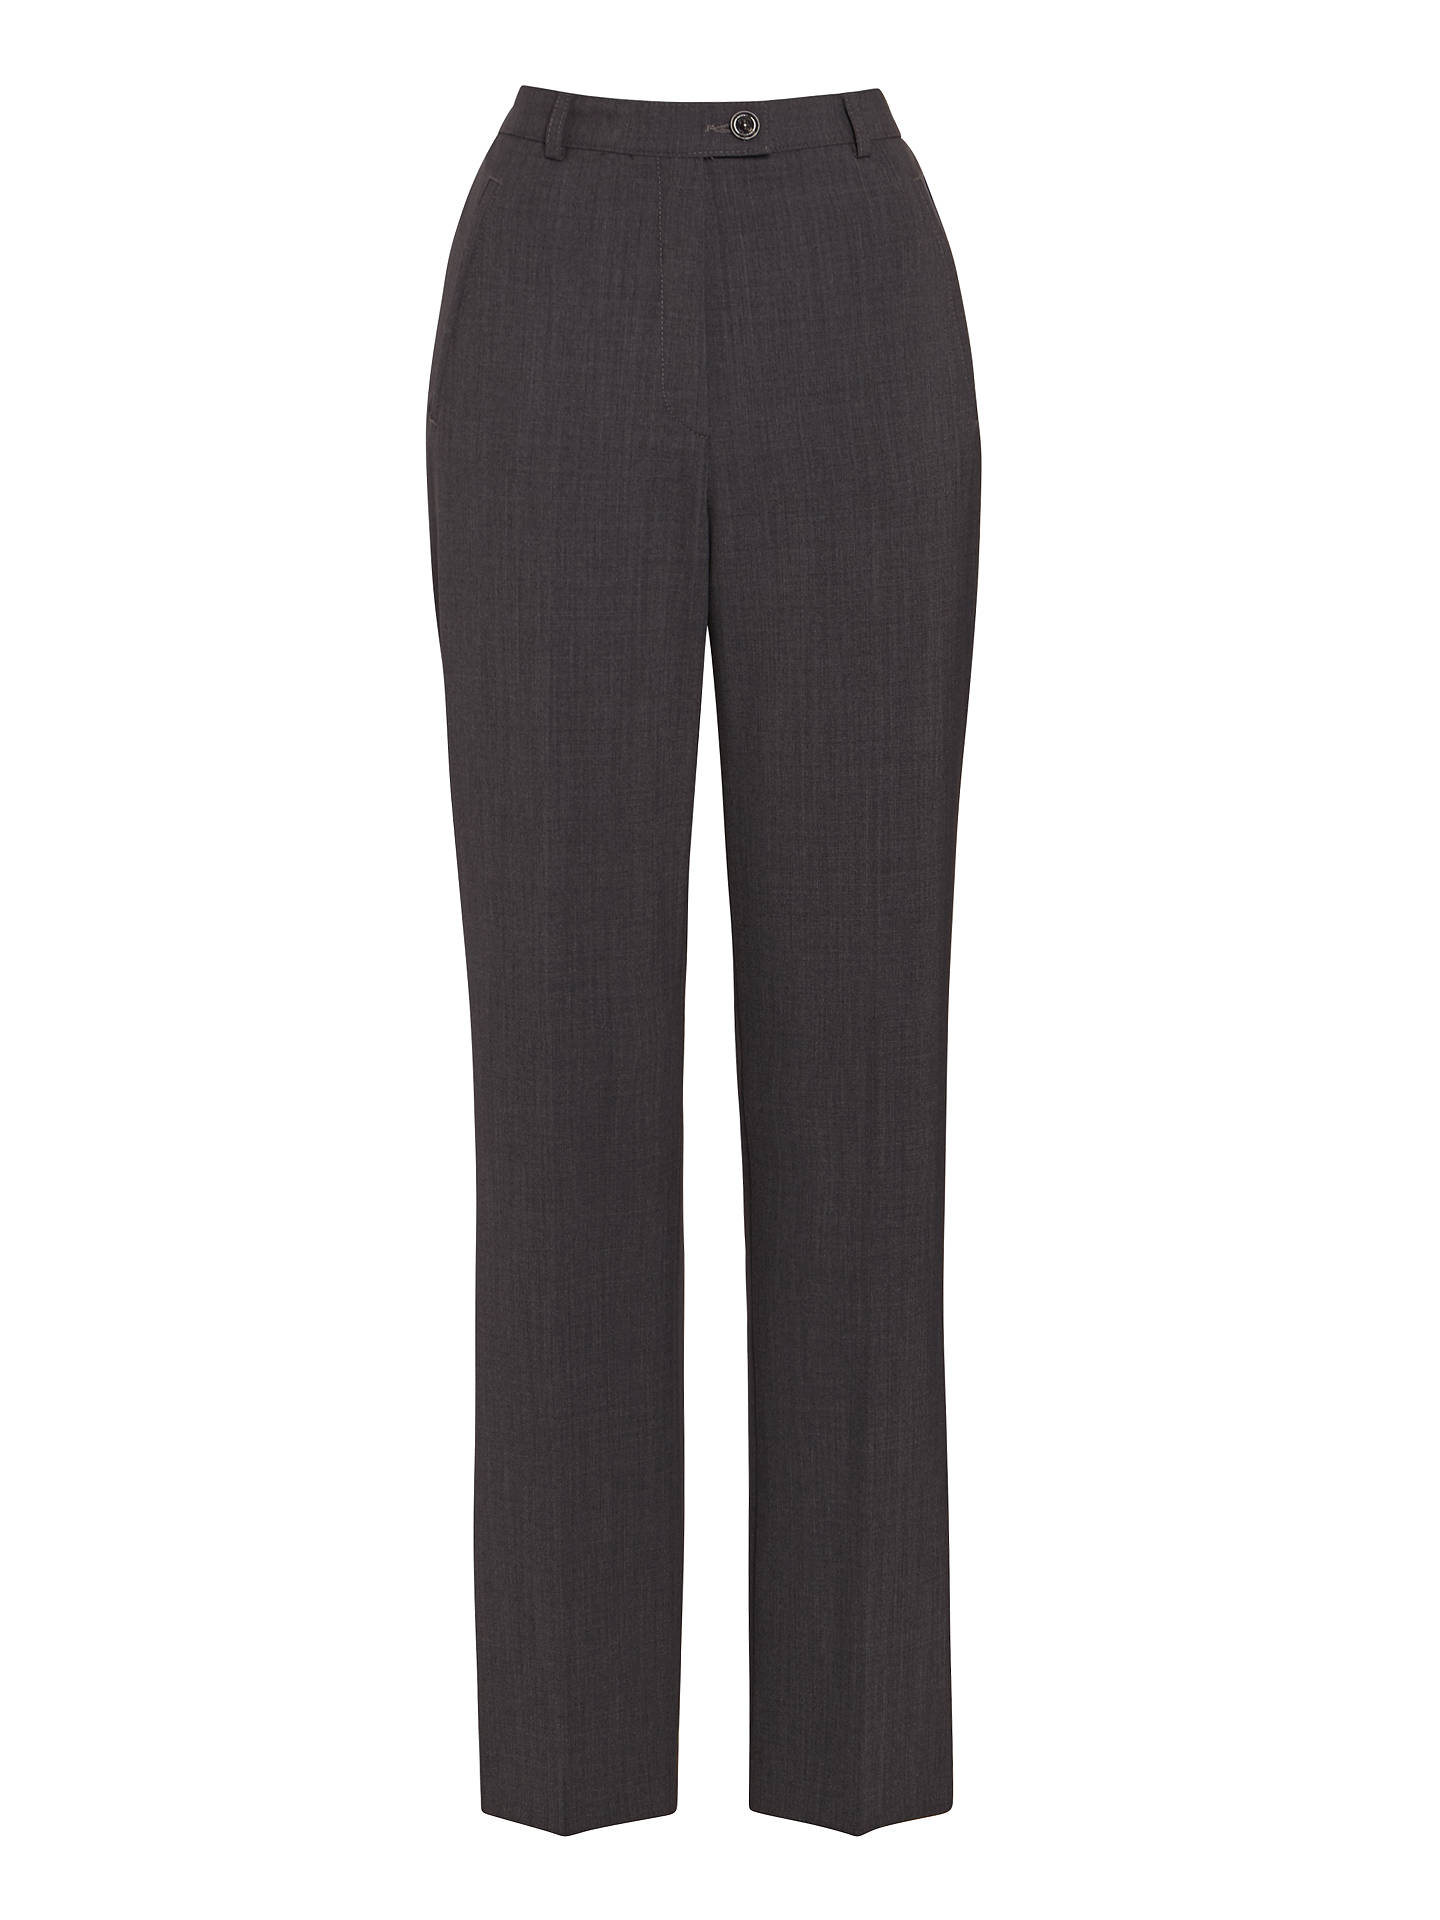 BuyGardeur City Straight Leg High Rise Trousers, Grey, 10R Online at johnlewis.com